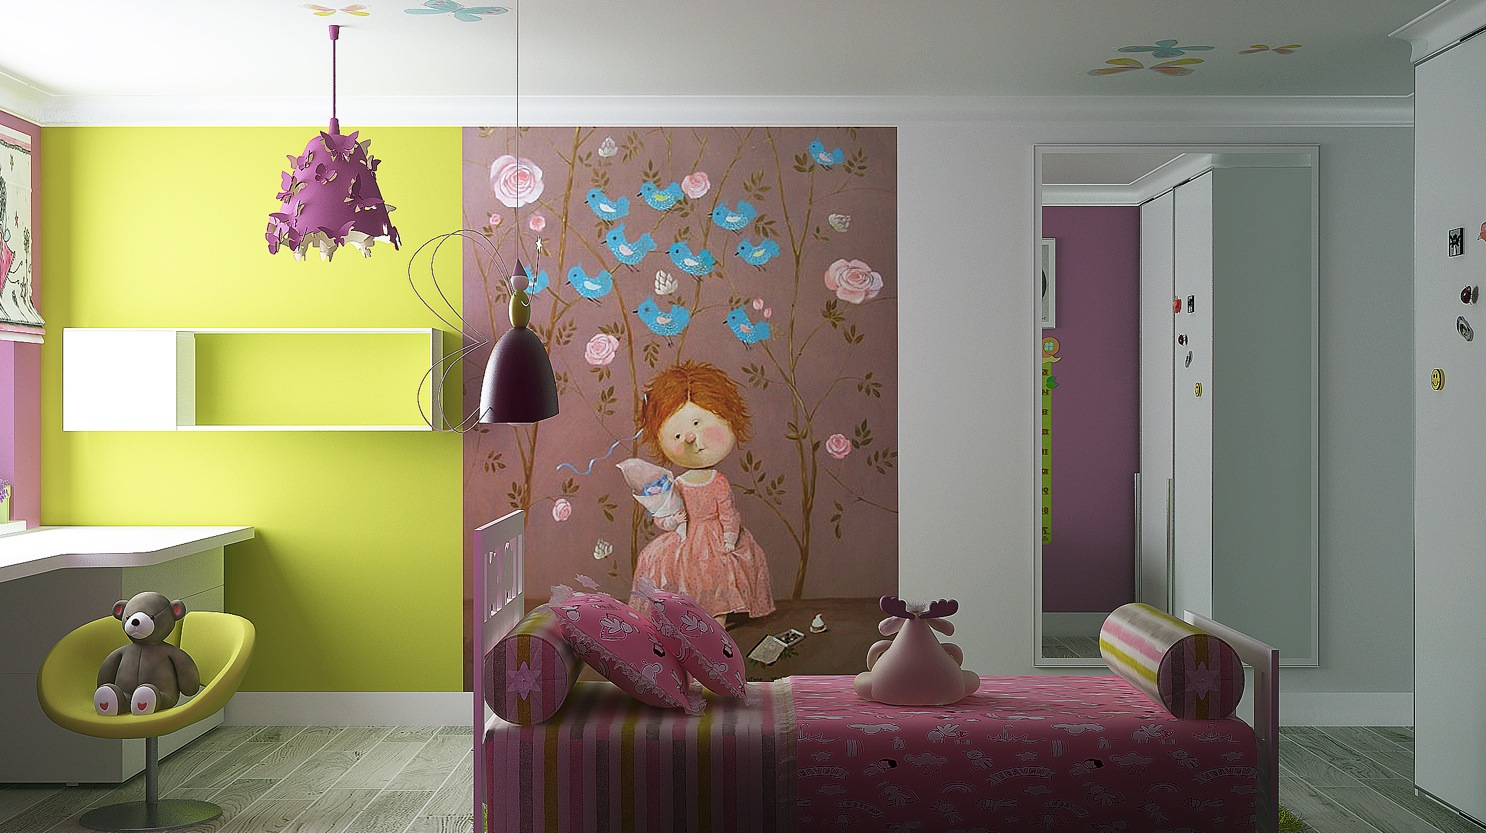 Incroyable Surprising Wall Mural To Decorate Bedroom For Girls With Unique Pendant  Lamps